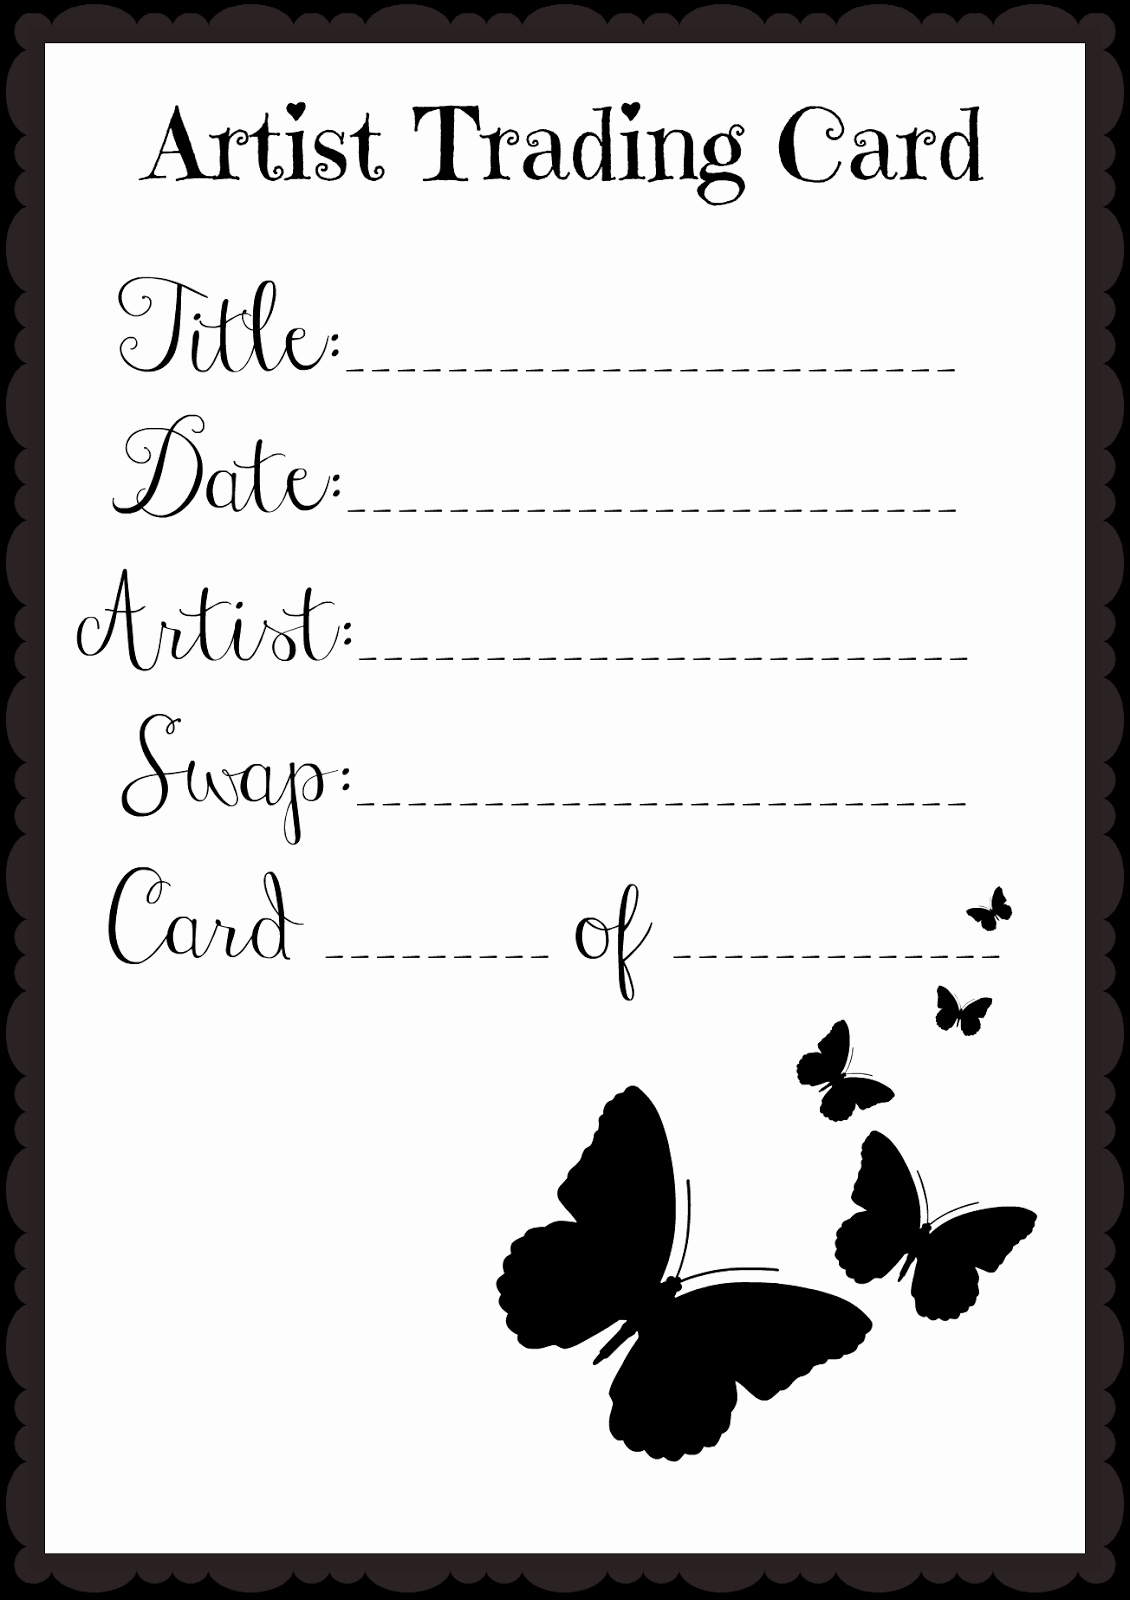 Artist Trading Cards Template New In This Little Corner Happy Three Kings Day Epiphany